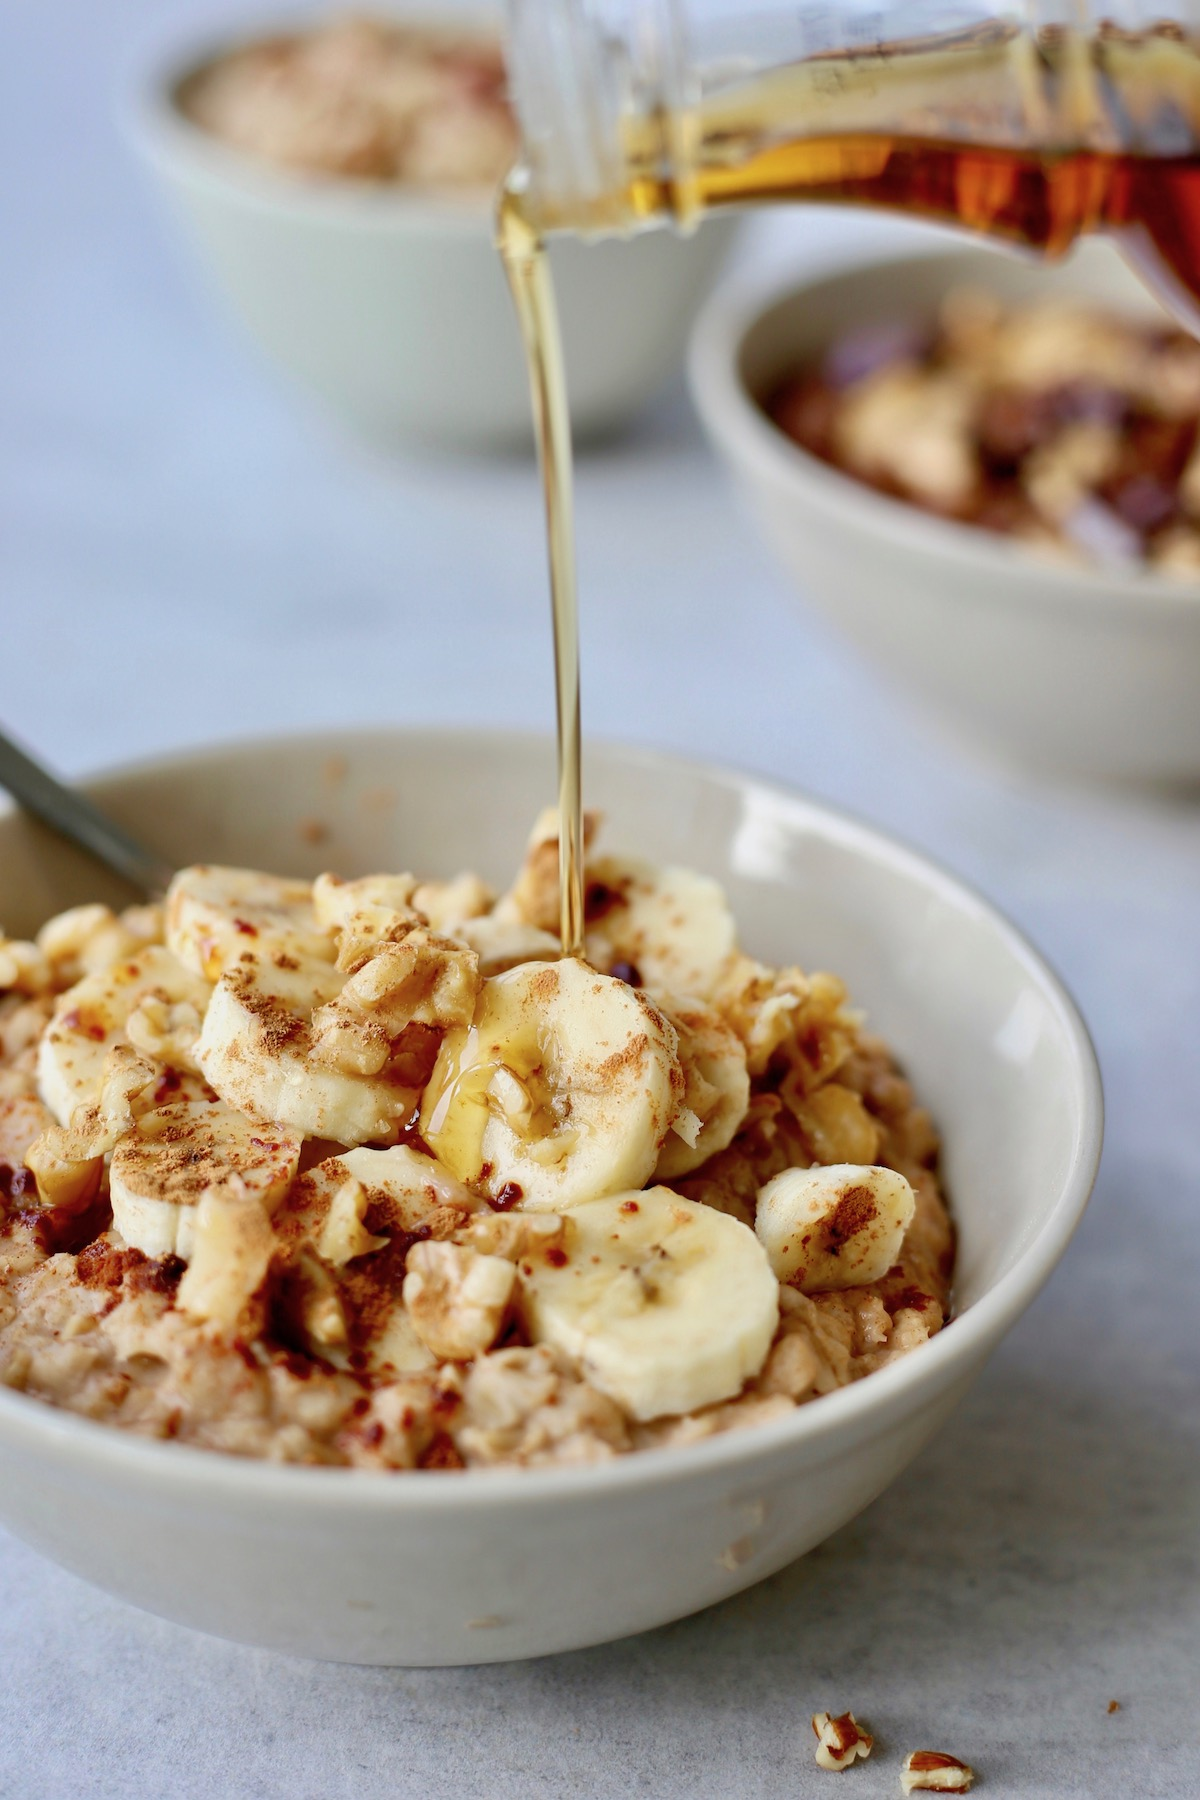 maple syrup being poured onto a bowl of banana oatmeal